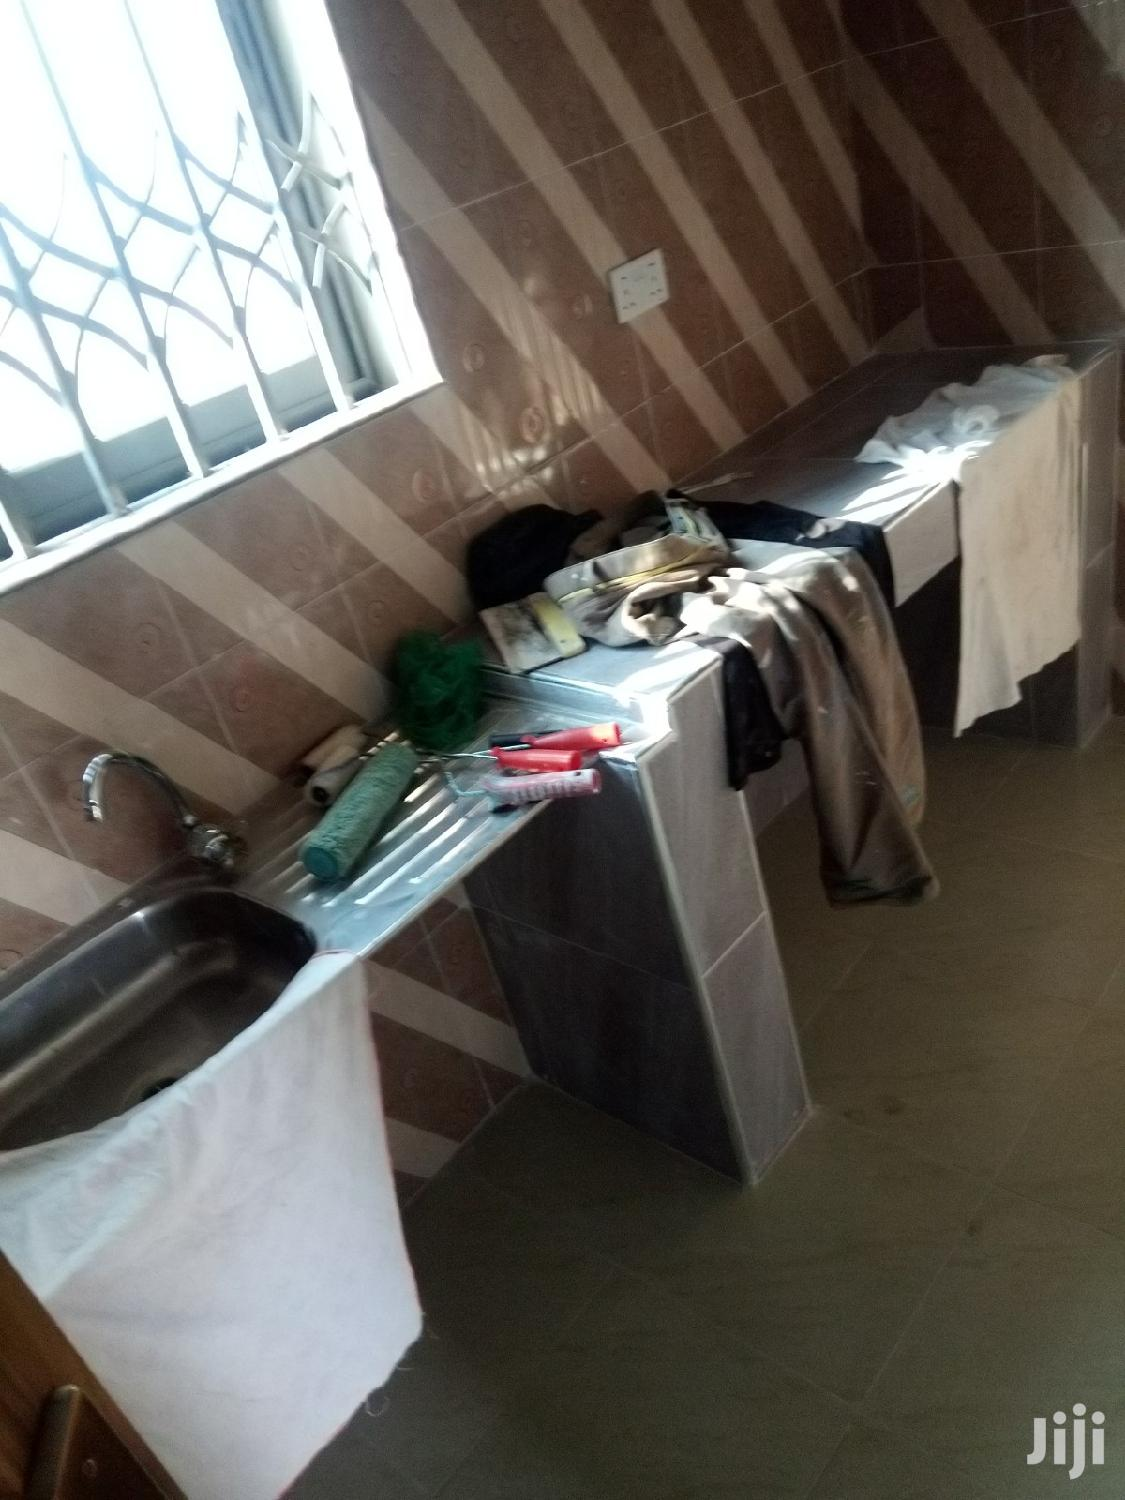 Archive: Chamber And Hall Self-contain